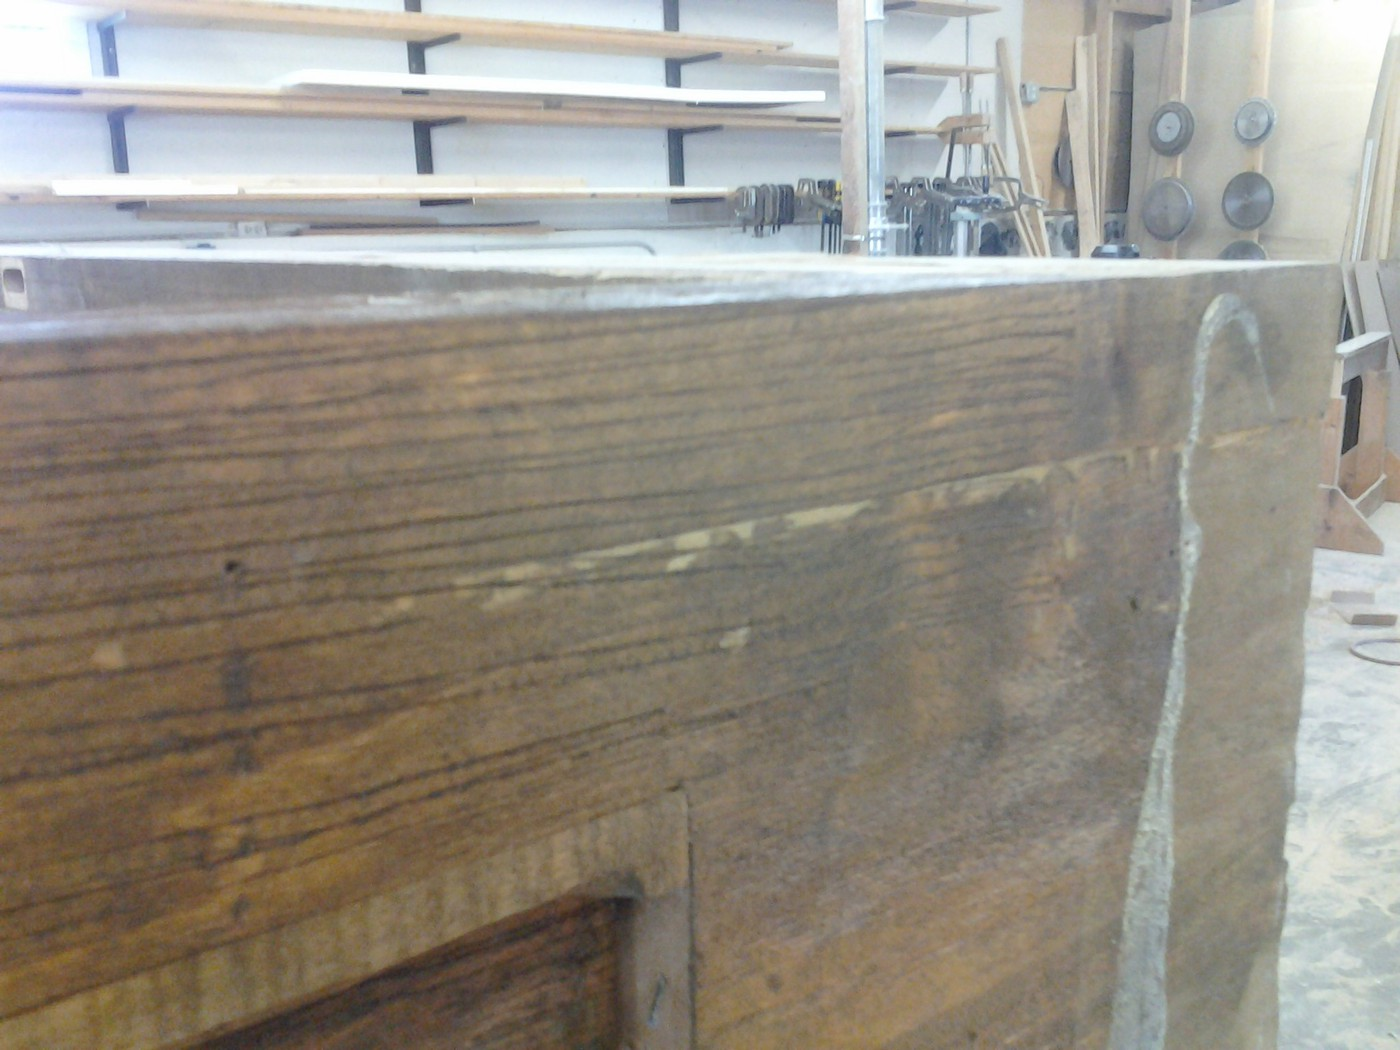 Lots of glue all over the cabinet that was never sanded before stain and finish.